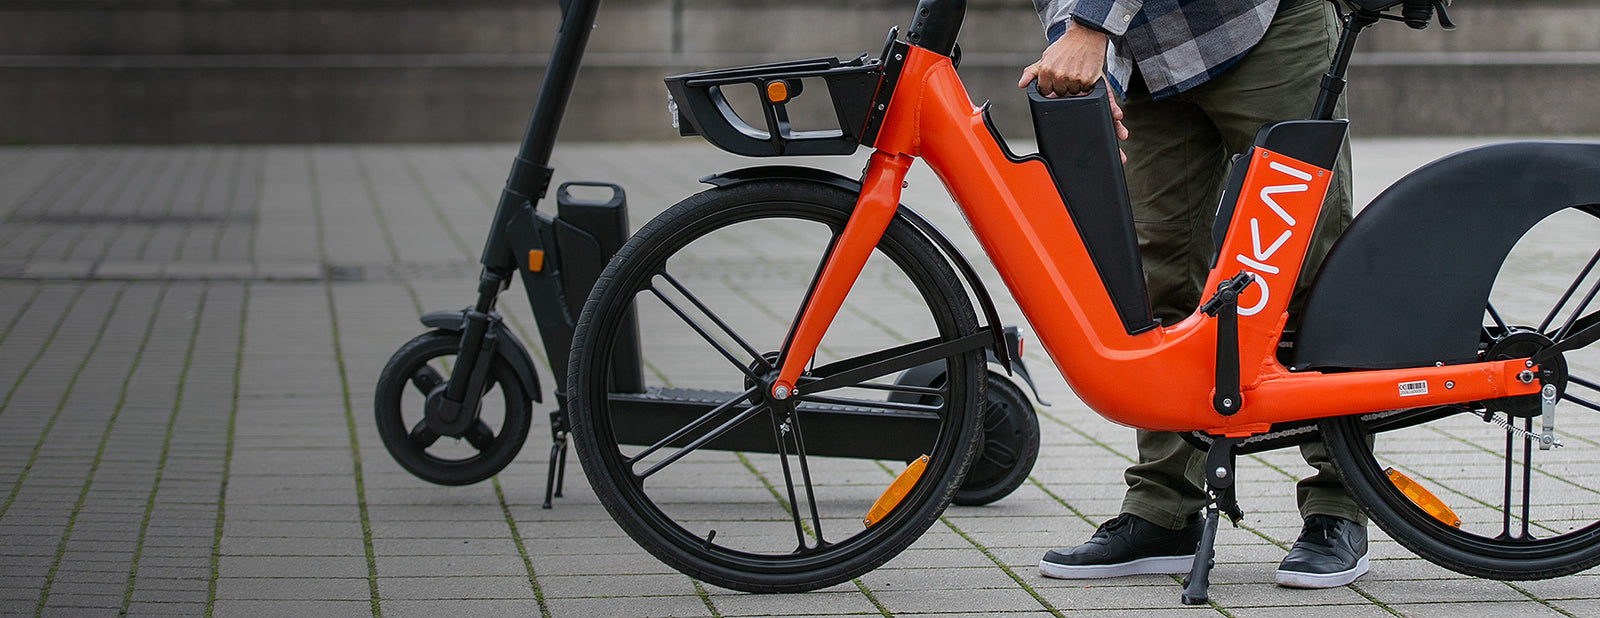 Multimodal services and battery charging management - Shared Micromobility